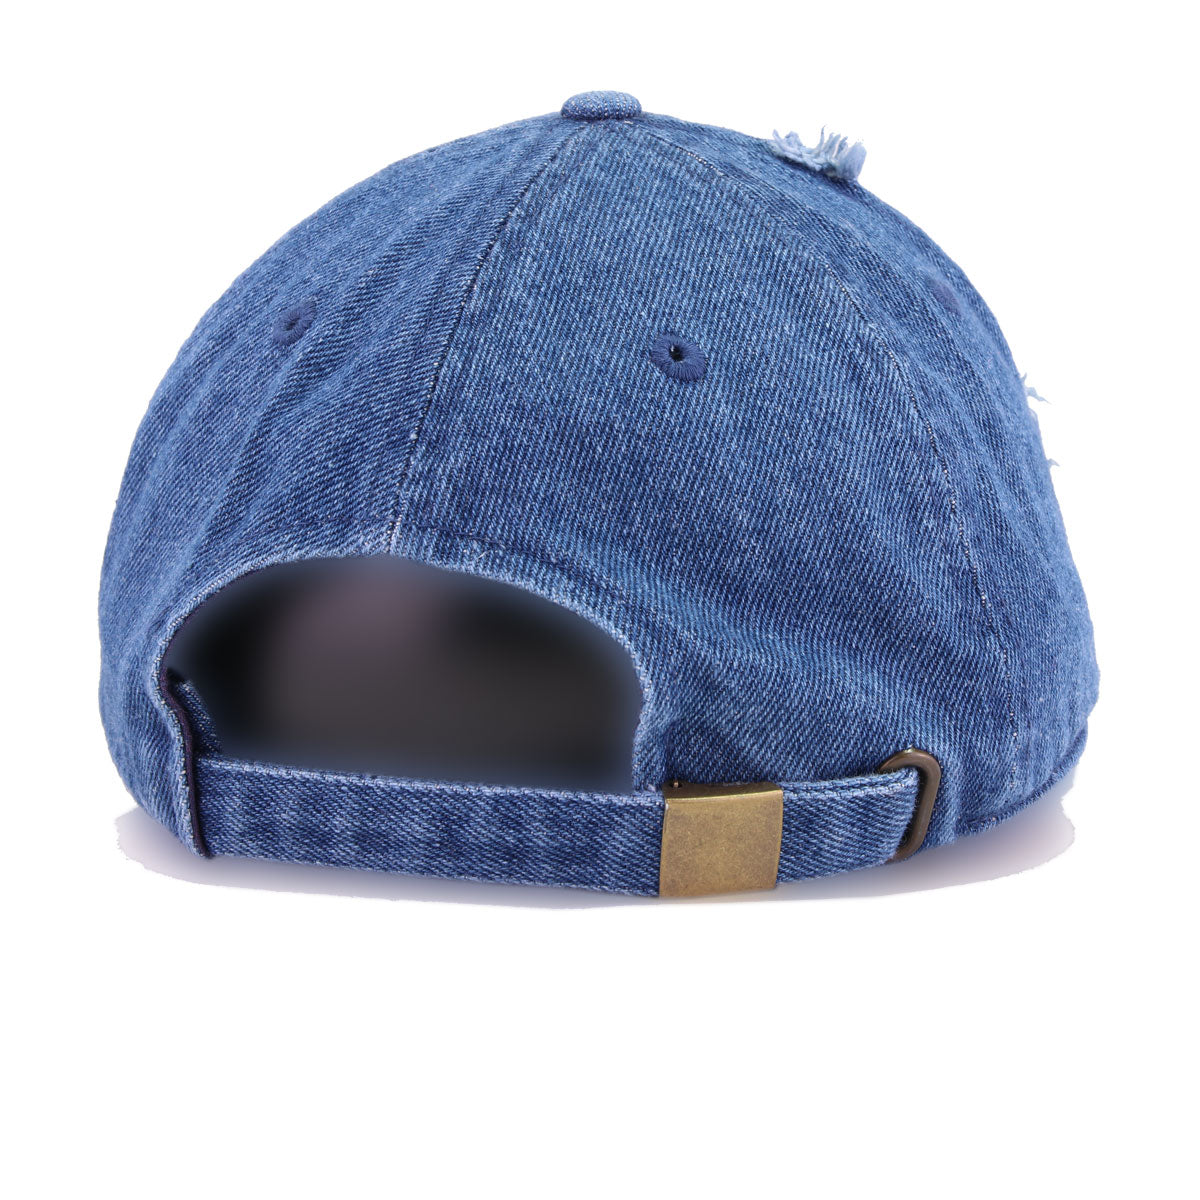 Distressed Medium Denim KBEthos Vintage Dad Hat